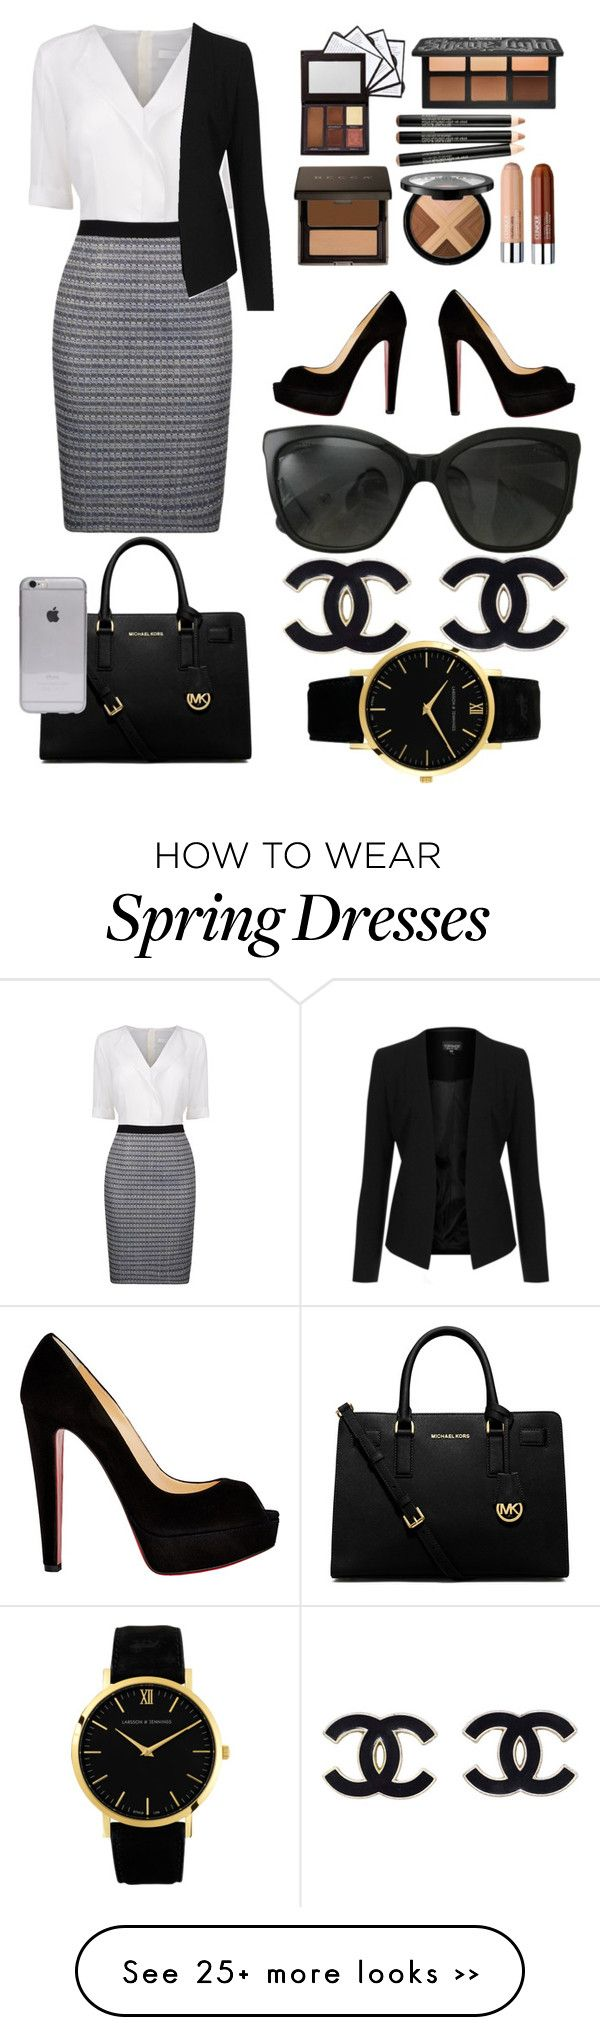 """""""The business woman"""" by londoner6401 on Polyvore featuring BOSS Black, Topshop, Christian Louboutin, MICHAEL Michael Kors, Chanel and Larsson & Jennings"""